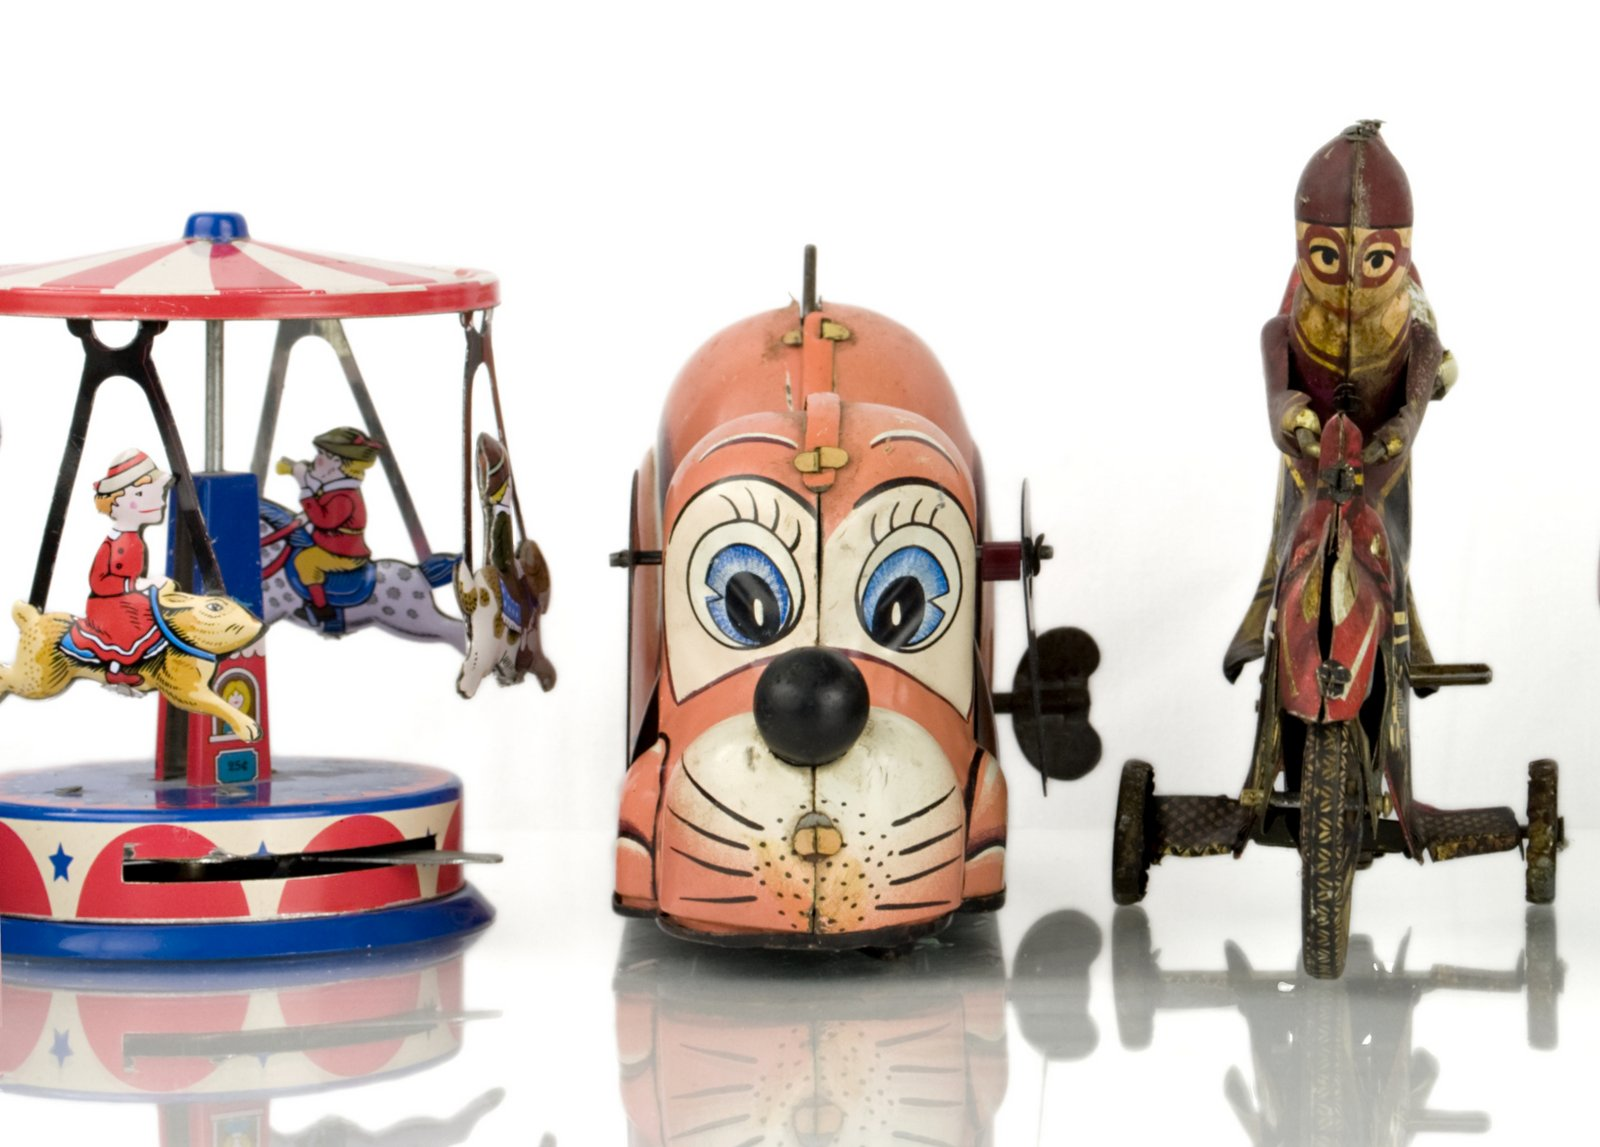 Antique tin wind-up toys